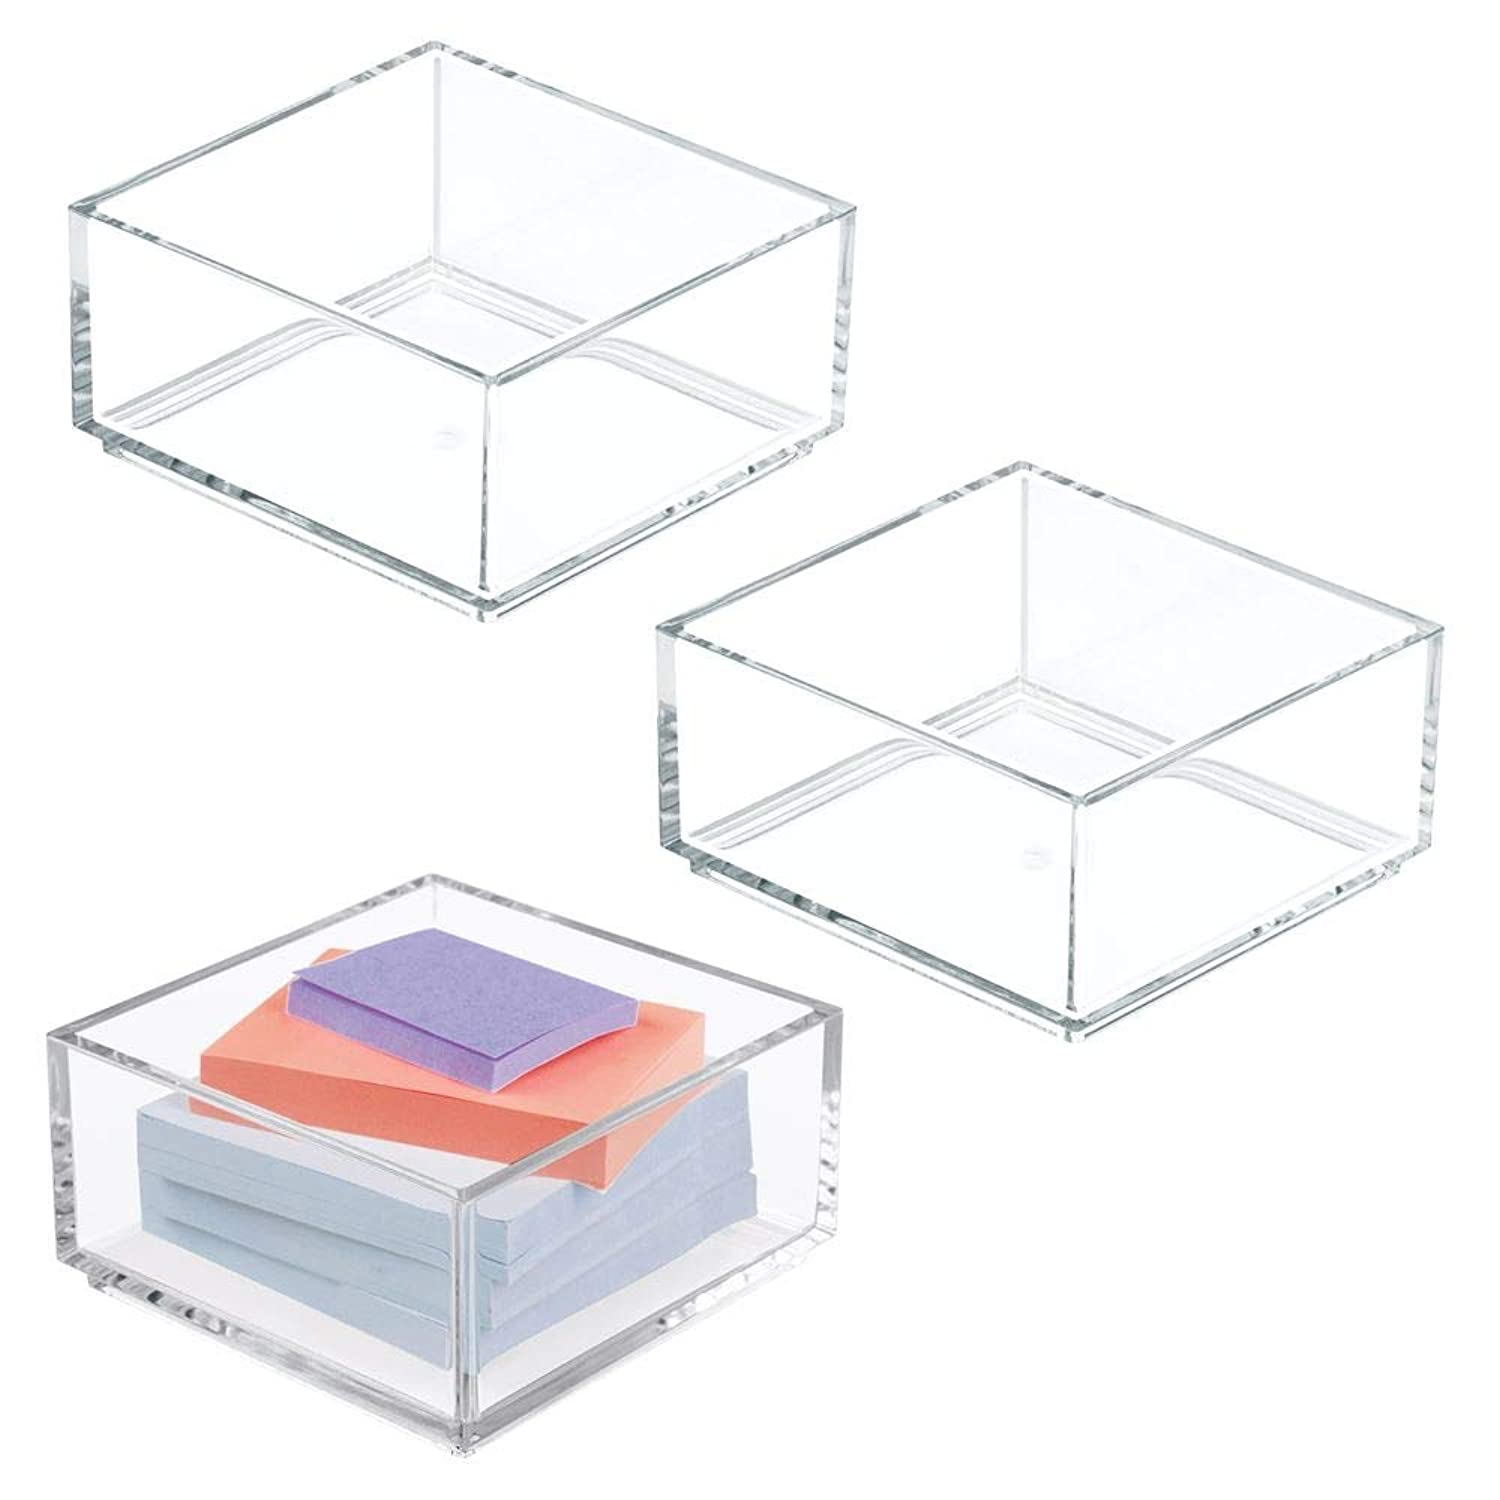 mDesign Plastic Stackable Drawer Organizer for Home Office, Desk Drawer, Shelf or Closet to Hold Staples, Highlighters, Adhesive Tape, Paper Clips, Stamps - 4